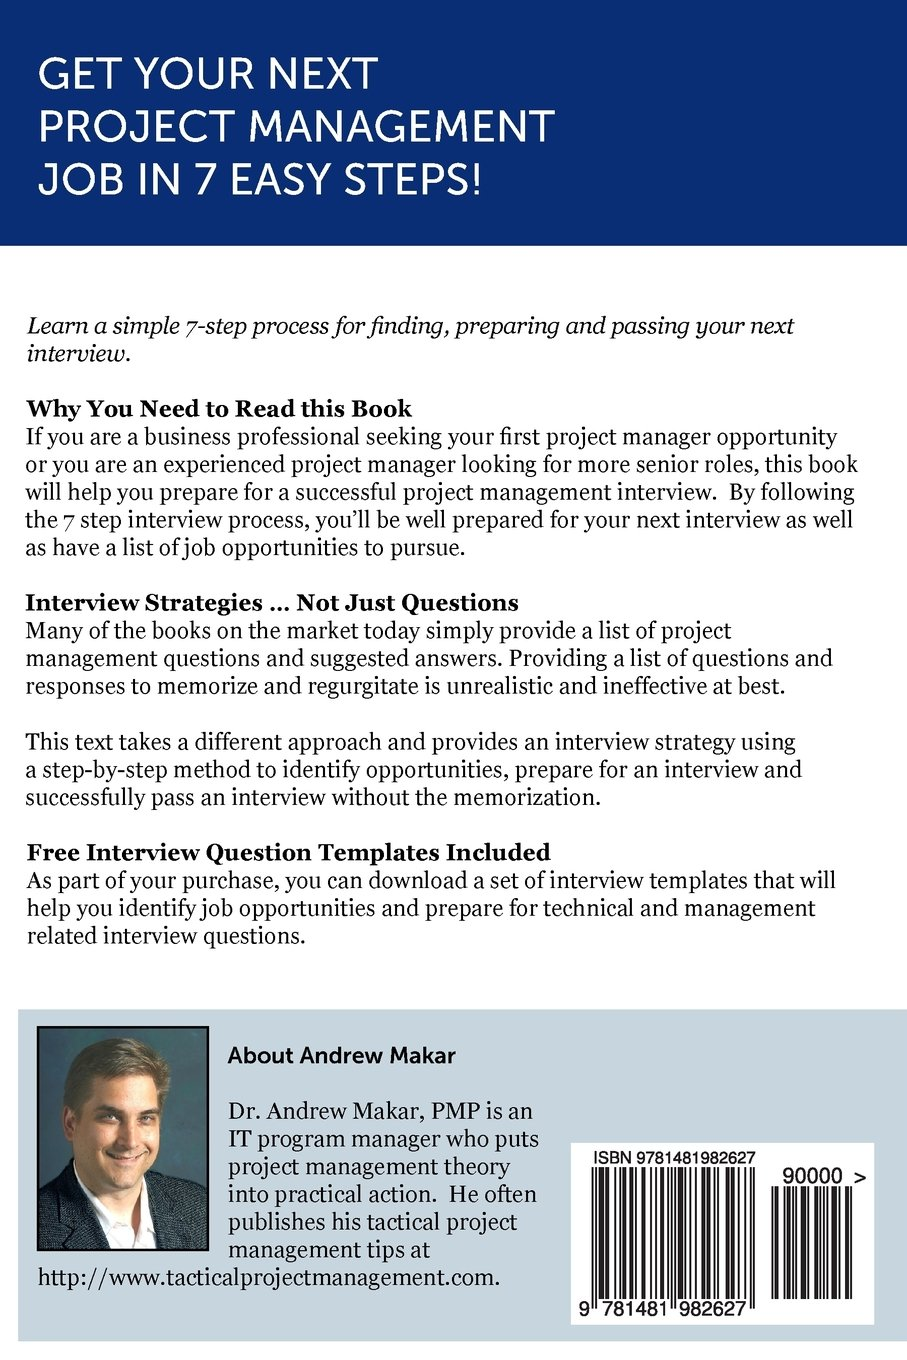 buy project management interview questions made easy the job buy project management interview questions made easy the job seeker s guide for successful project management interviews book online at low prices in